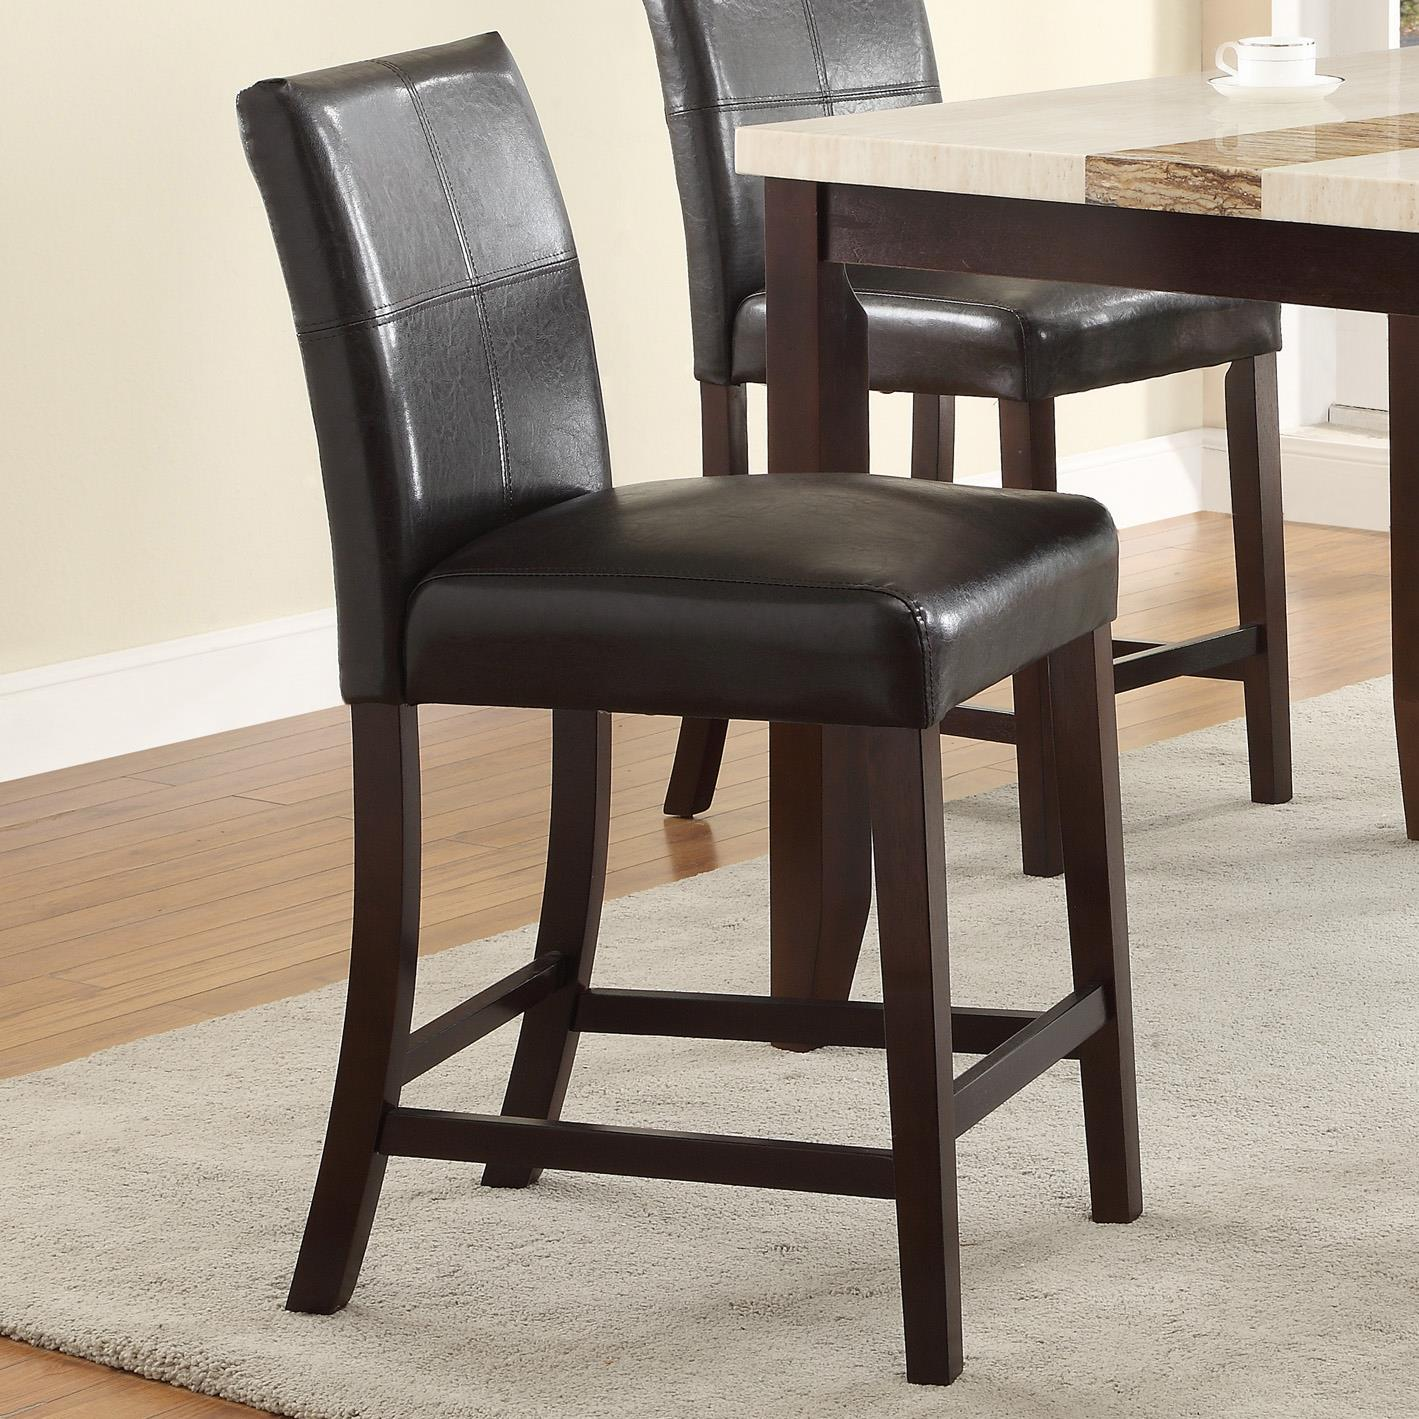 Crown Chair Crown Mark Larissa 2722s 24 Upholstered Counter Height